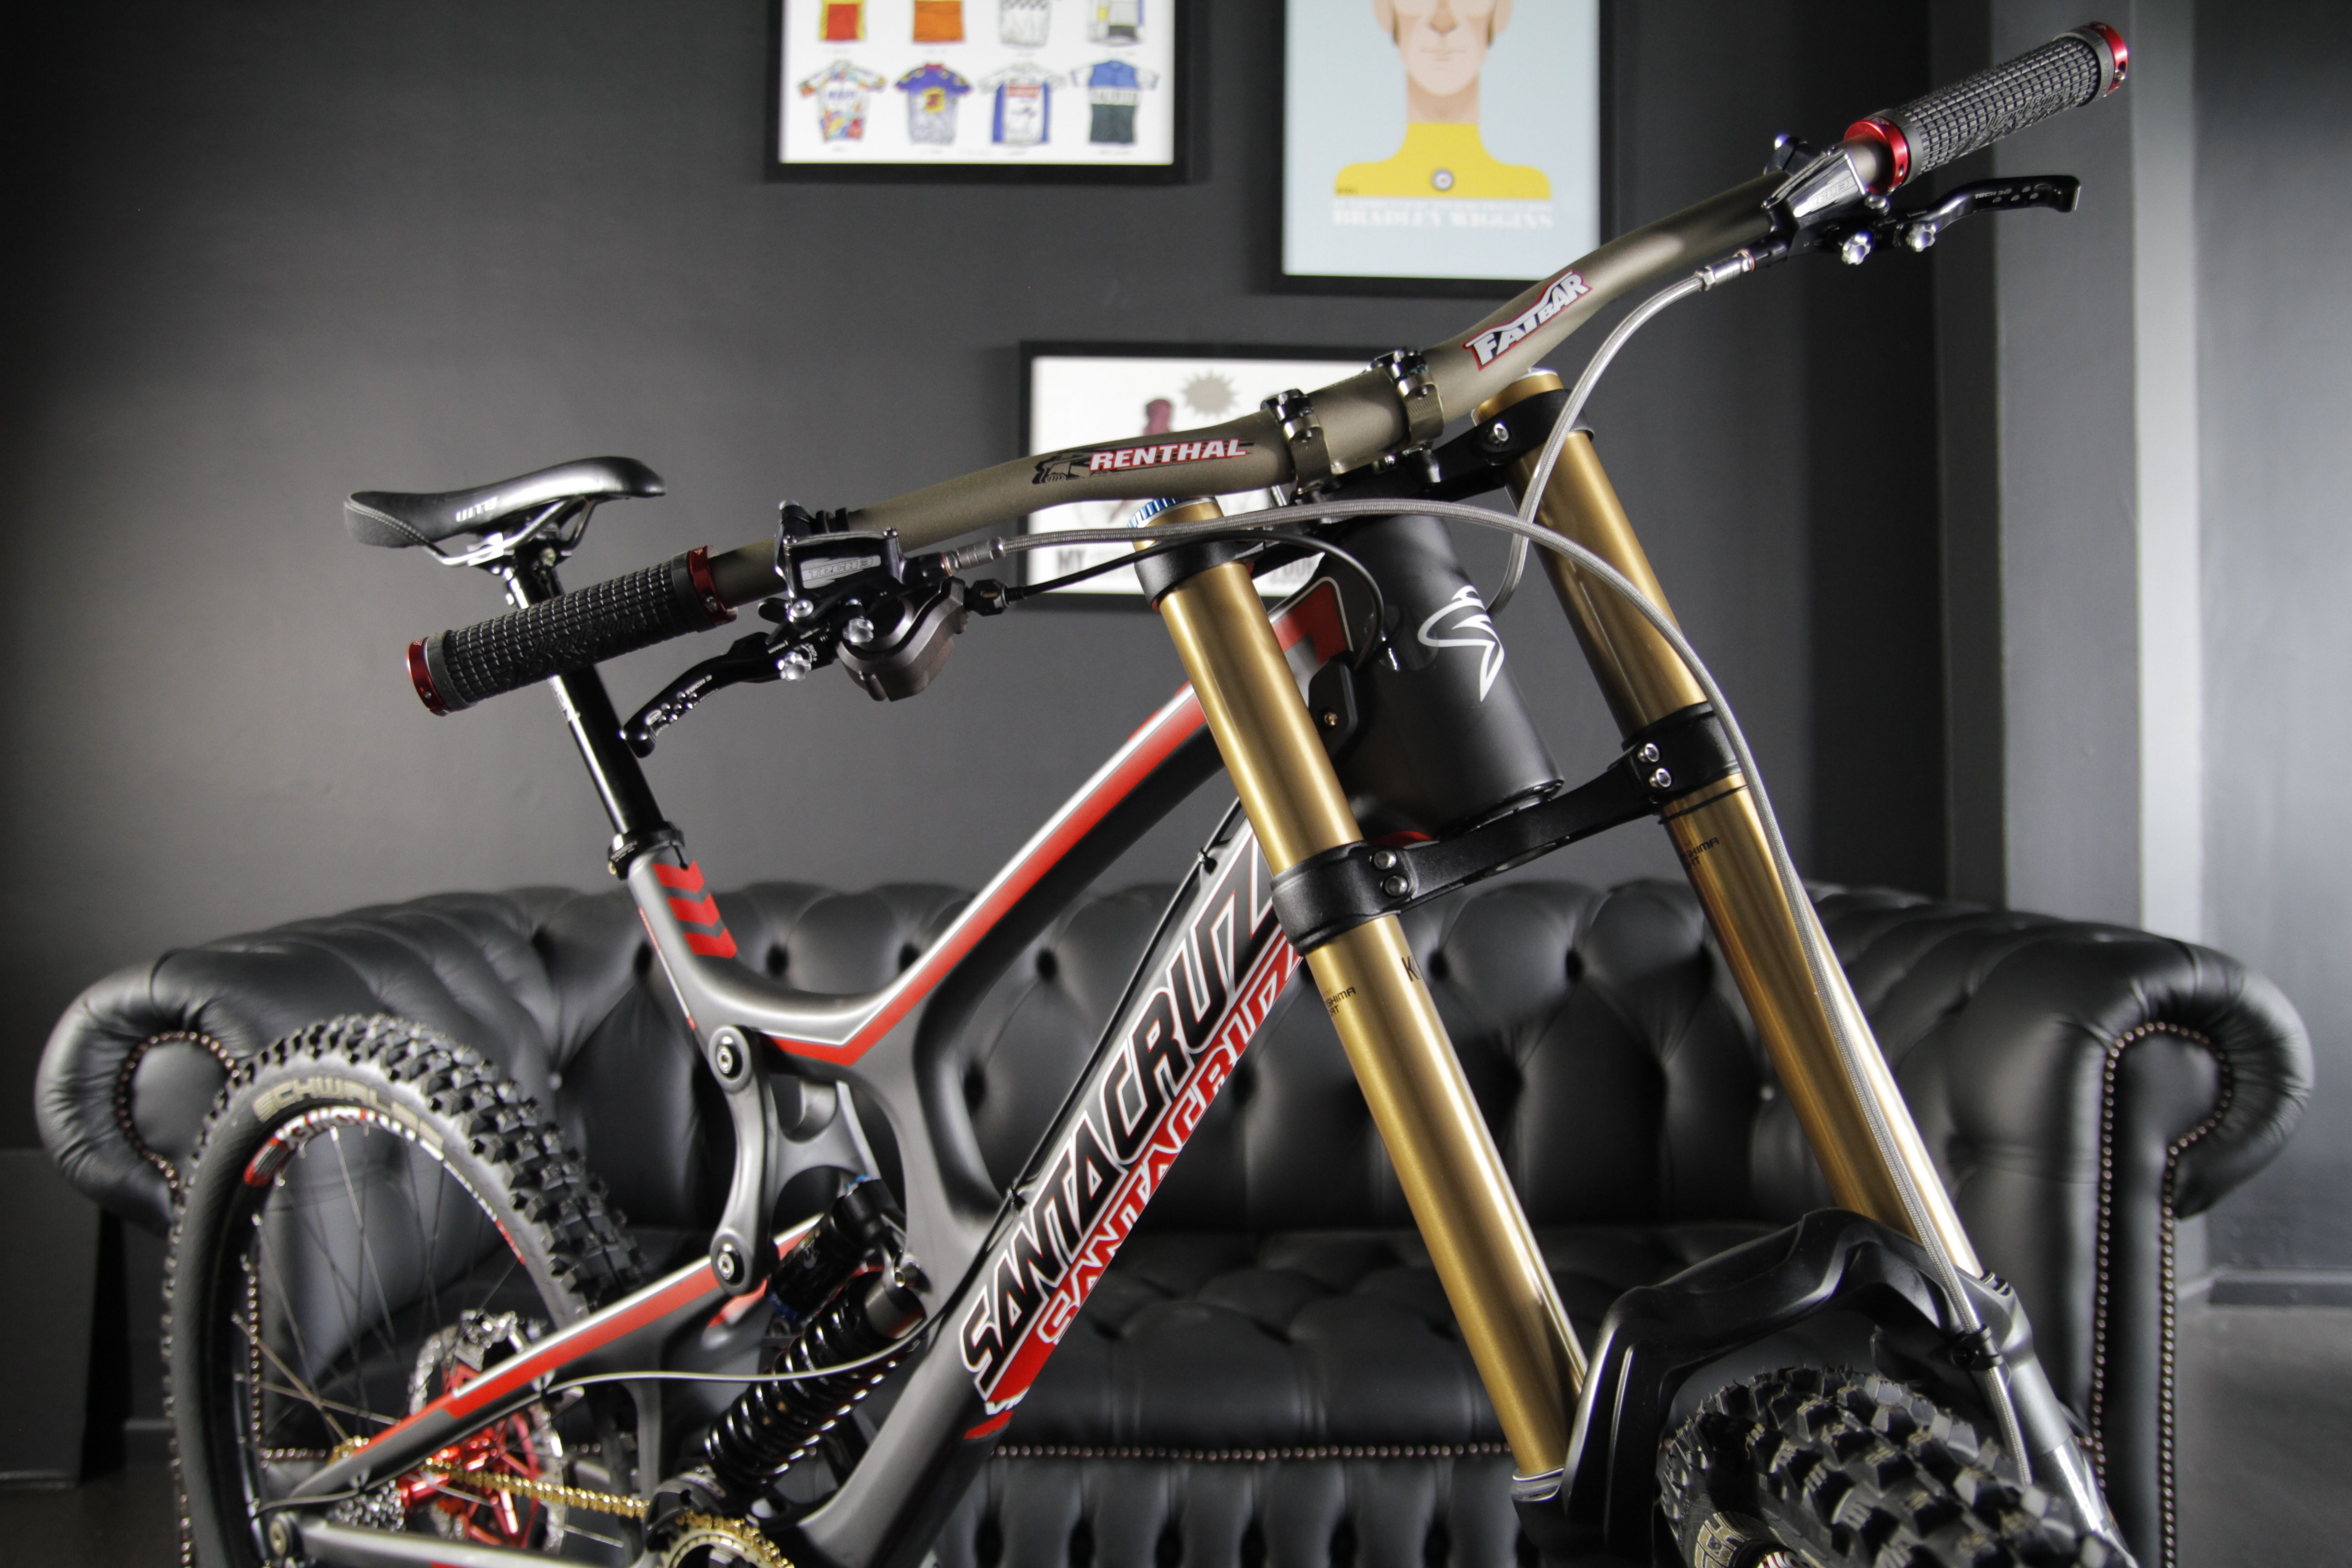 Bike of the day santa cruz v10 carbon dh builds from 7499 http bike of the day santa cruz v10 carbon dh builds from 7499 thecheapjerseys Image collections